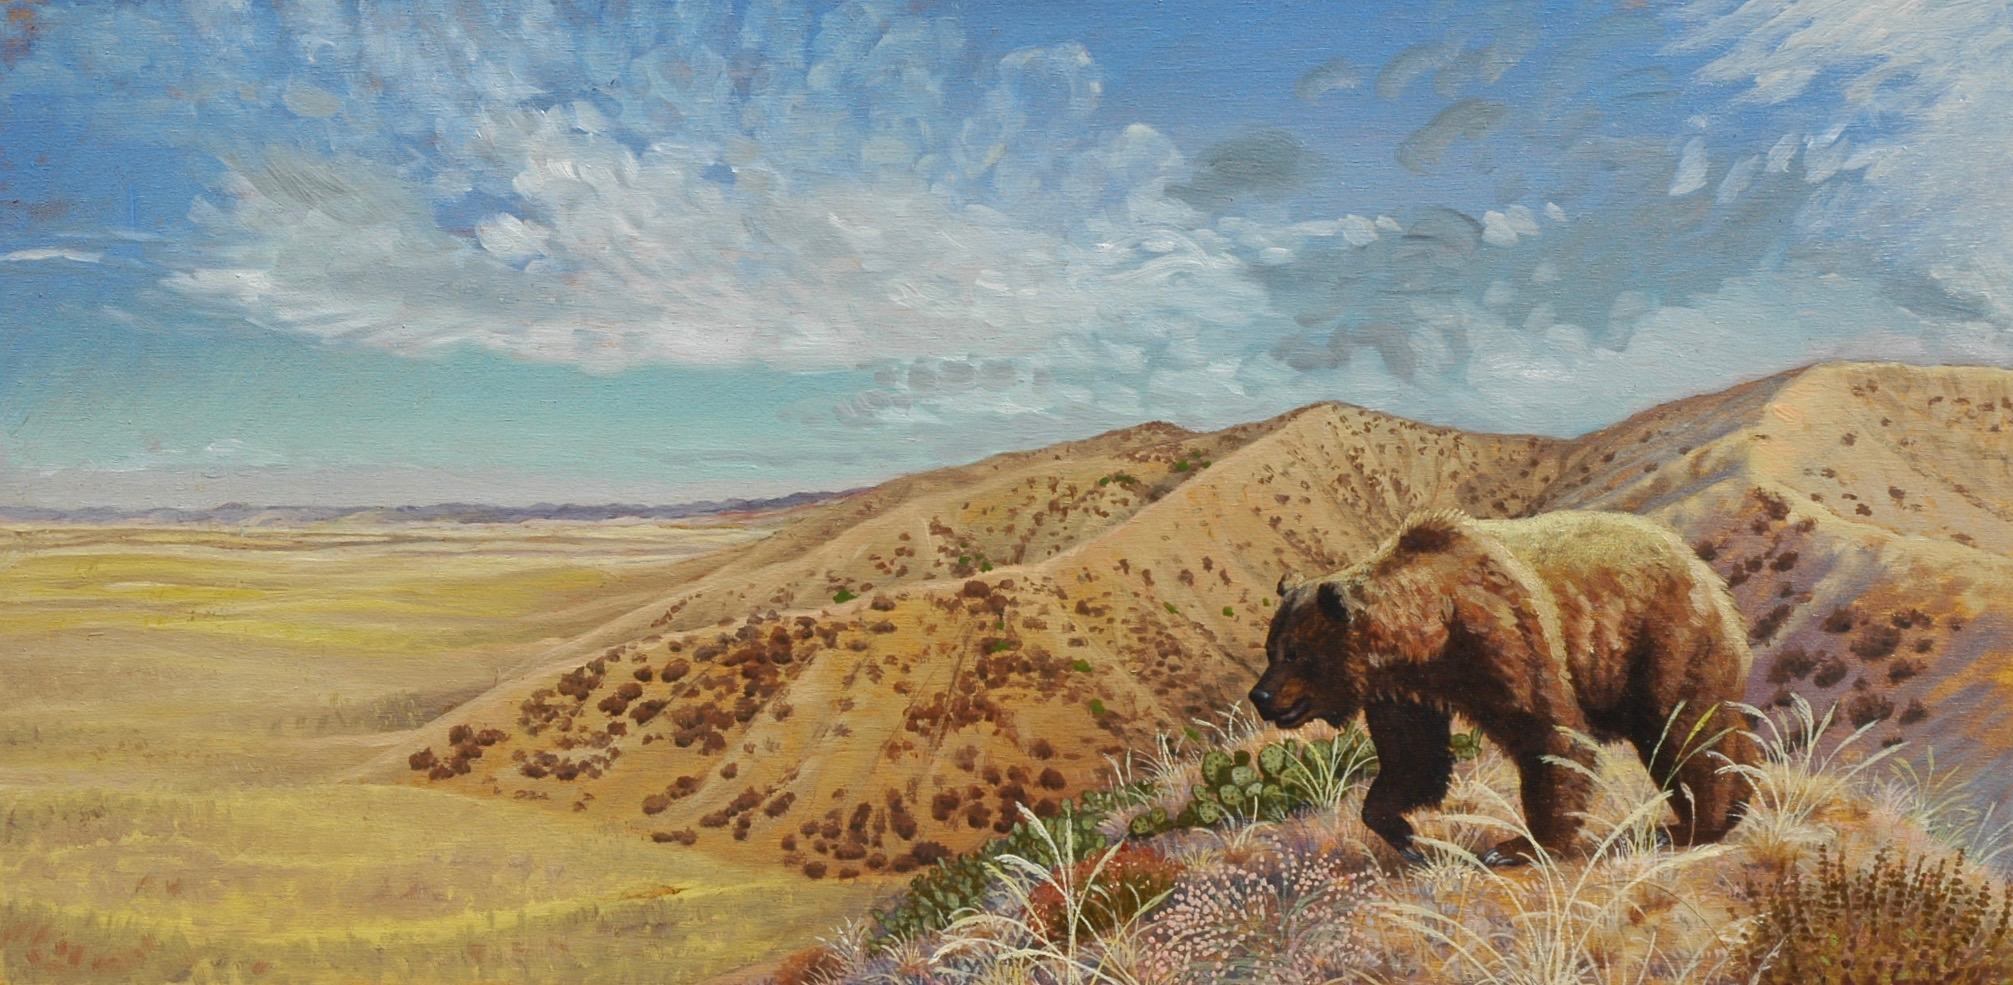 A California Grizzly prowls the San Fernando Valley before European settlement, as envisioned by painter Laura Cunningham.